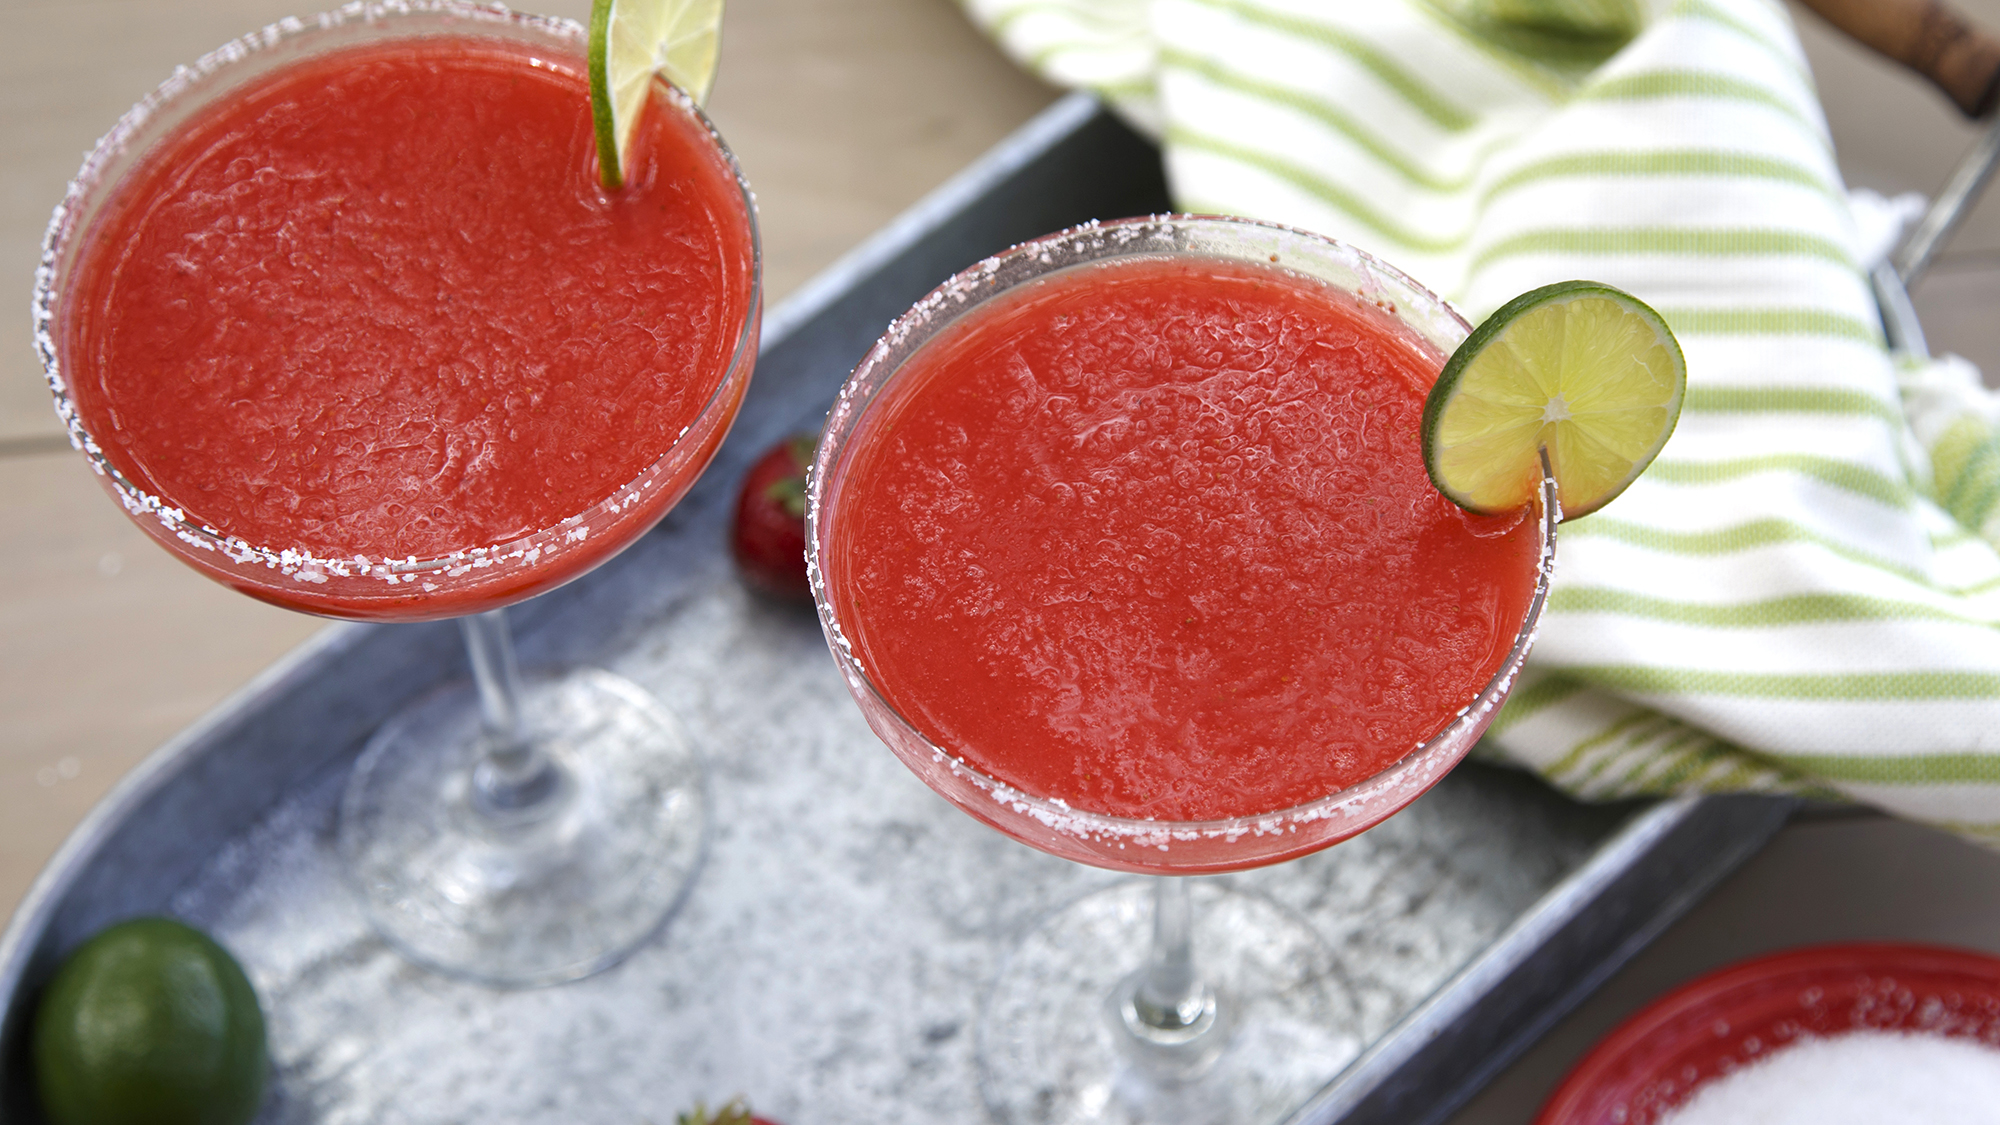 Strawberry_Margarita_2000x1125.jpg